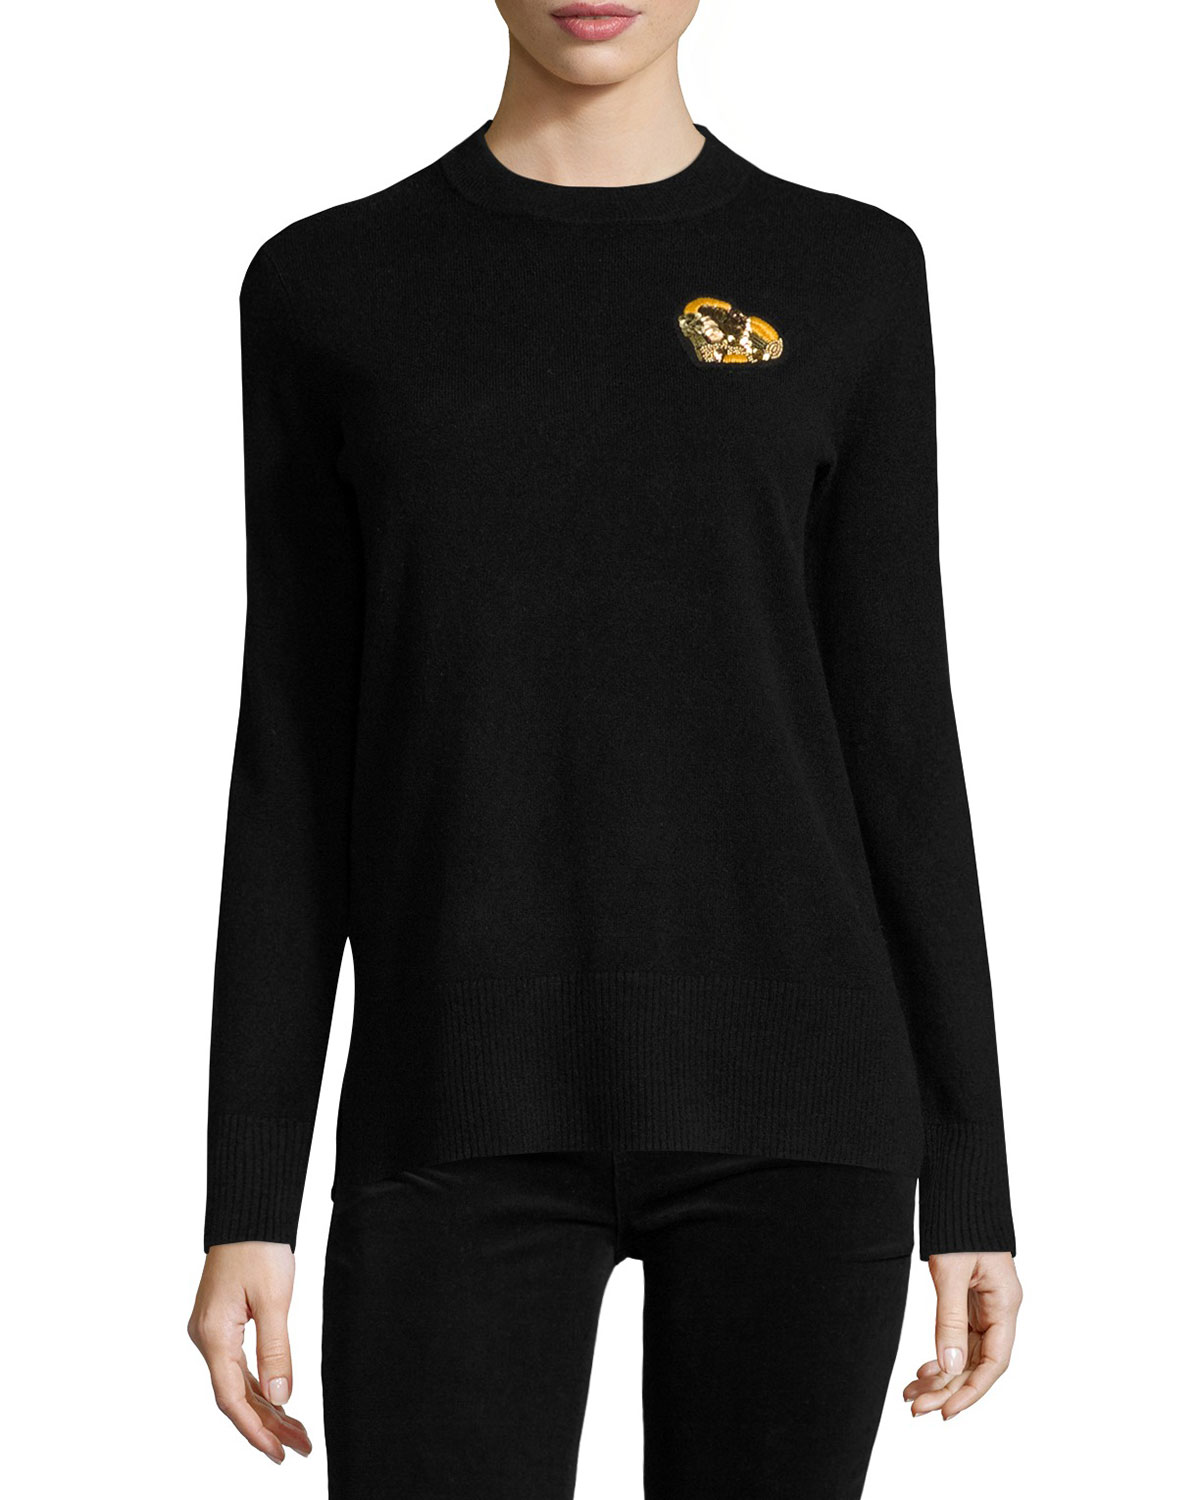 Cashmere Pullover w/ Gold Heart Patch, Black